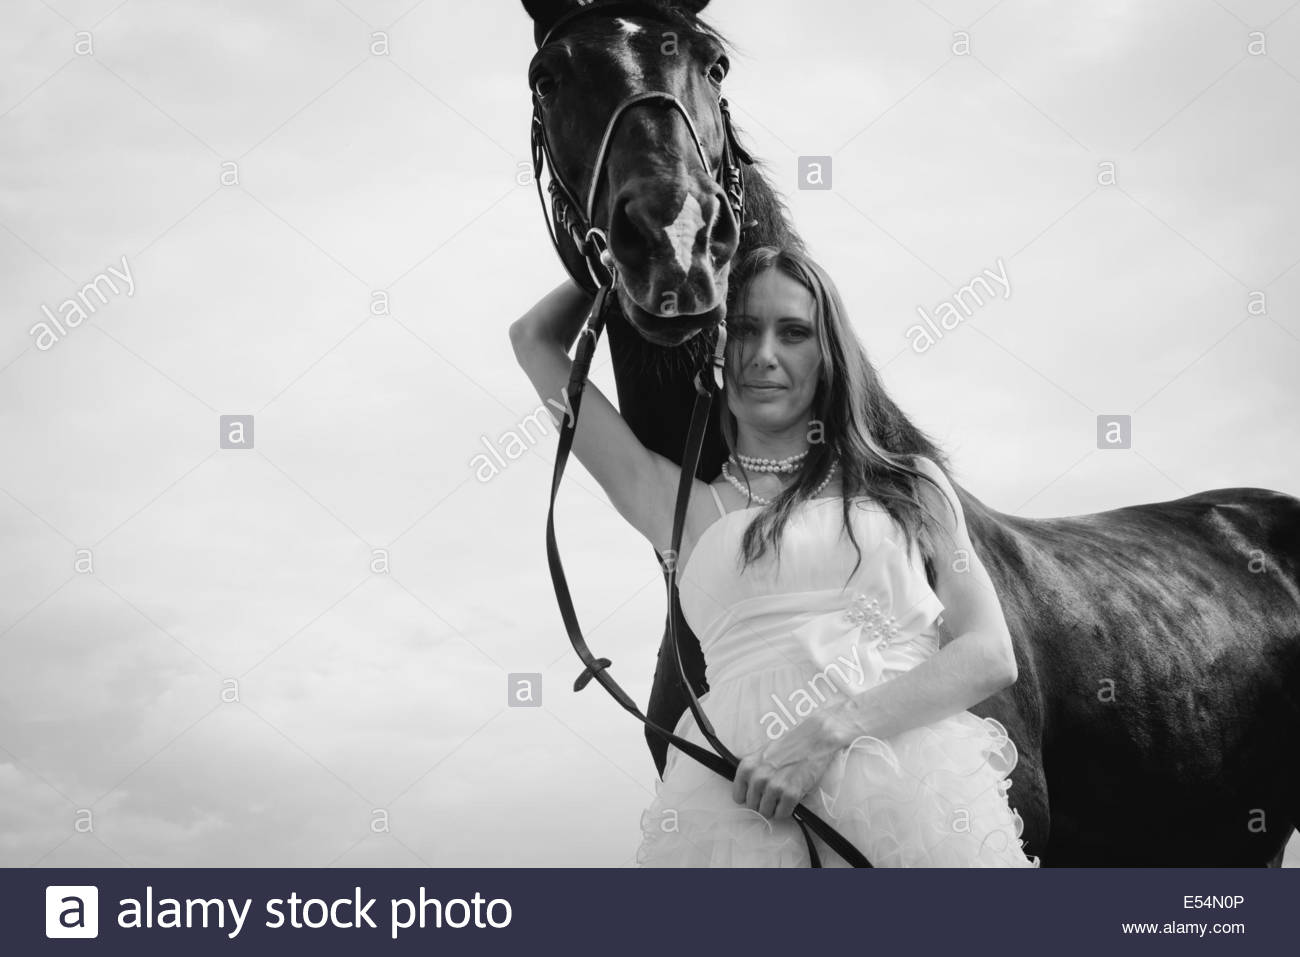 unusual bride at a wedding on black horse outdoors - Stock Image